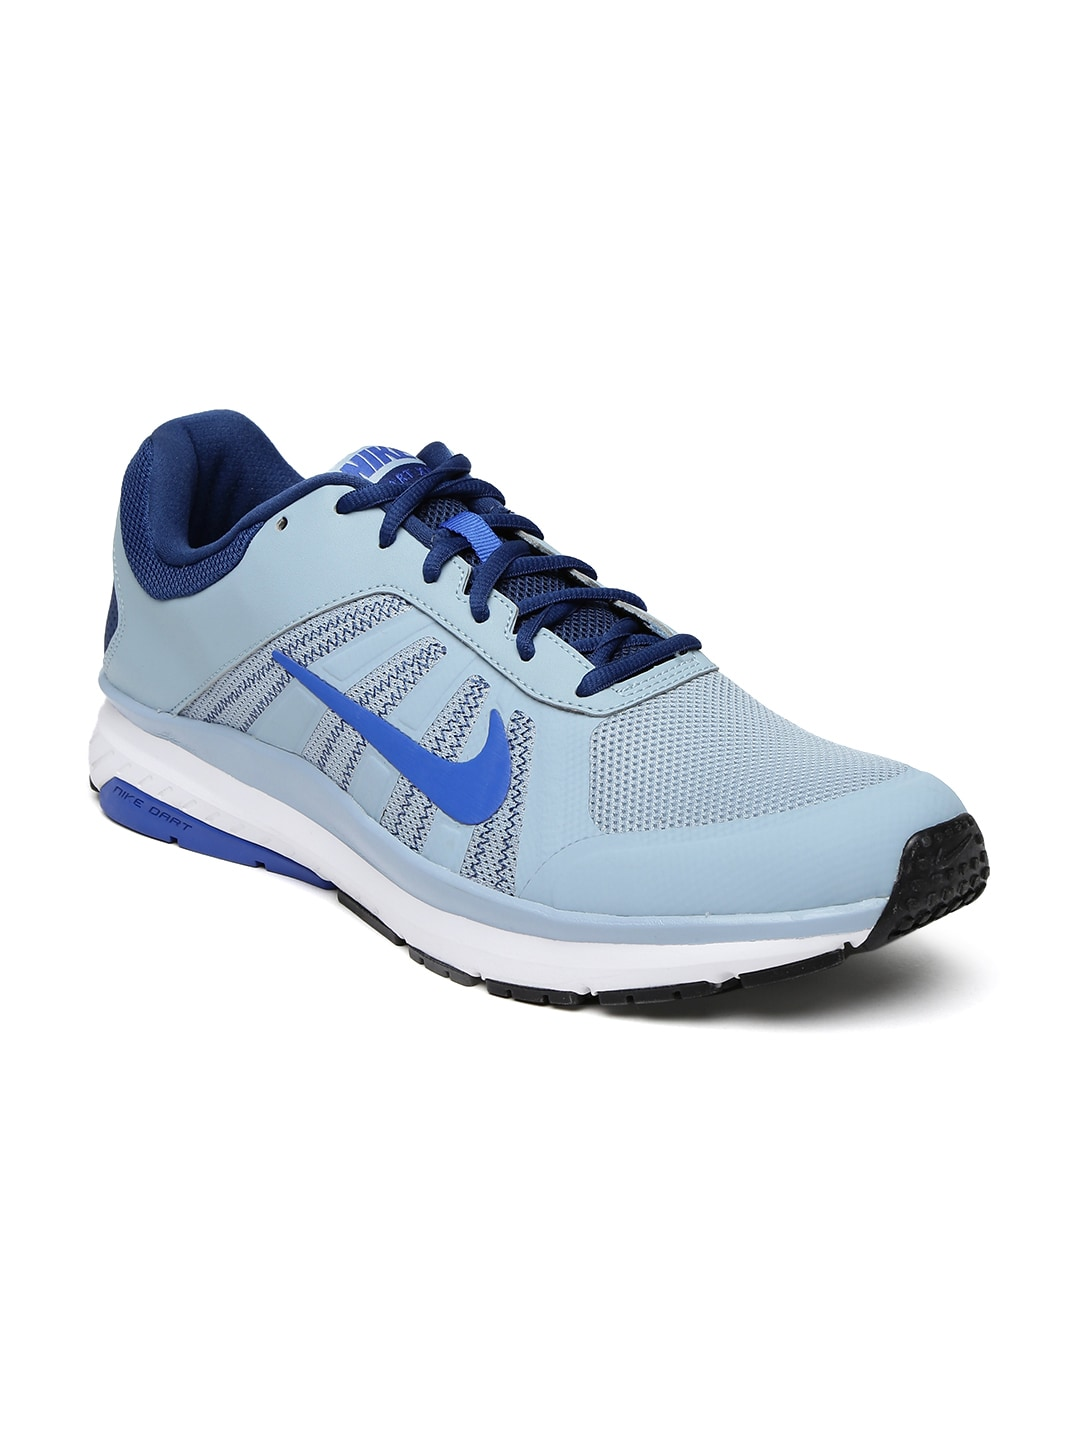 30cc3571444fb Nike Men Blue Dart 12 MSL Running Shoes